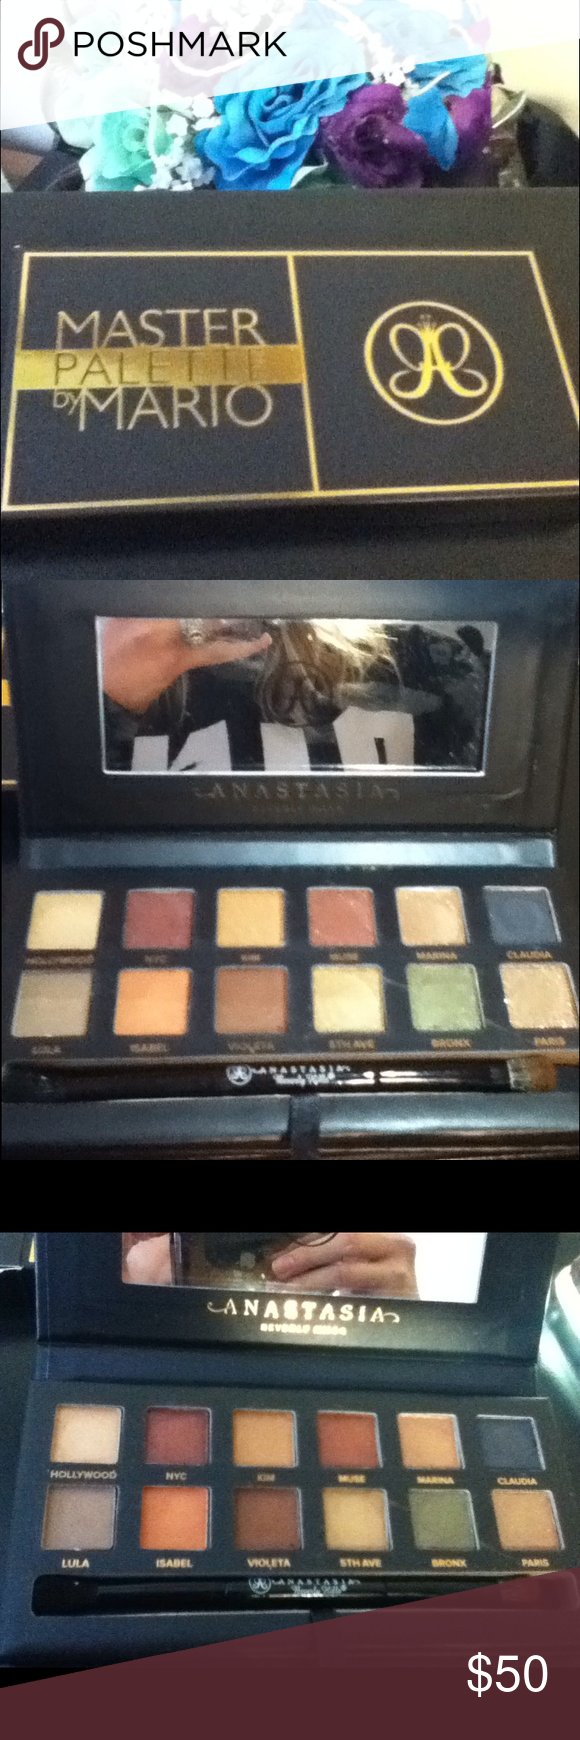 Master palette by Mario Anastasia Beverly hills Lightly searched only. Comes with the box and brush! Beautiful limited edition palette!! Created by Kim kardashians makeup artist!!! NO RUDE COMMENTS!!! I ACCEPT OFFERS!!! Anastasia Beverly Hills Other